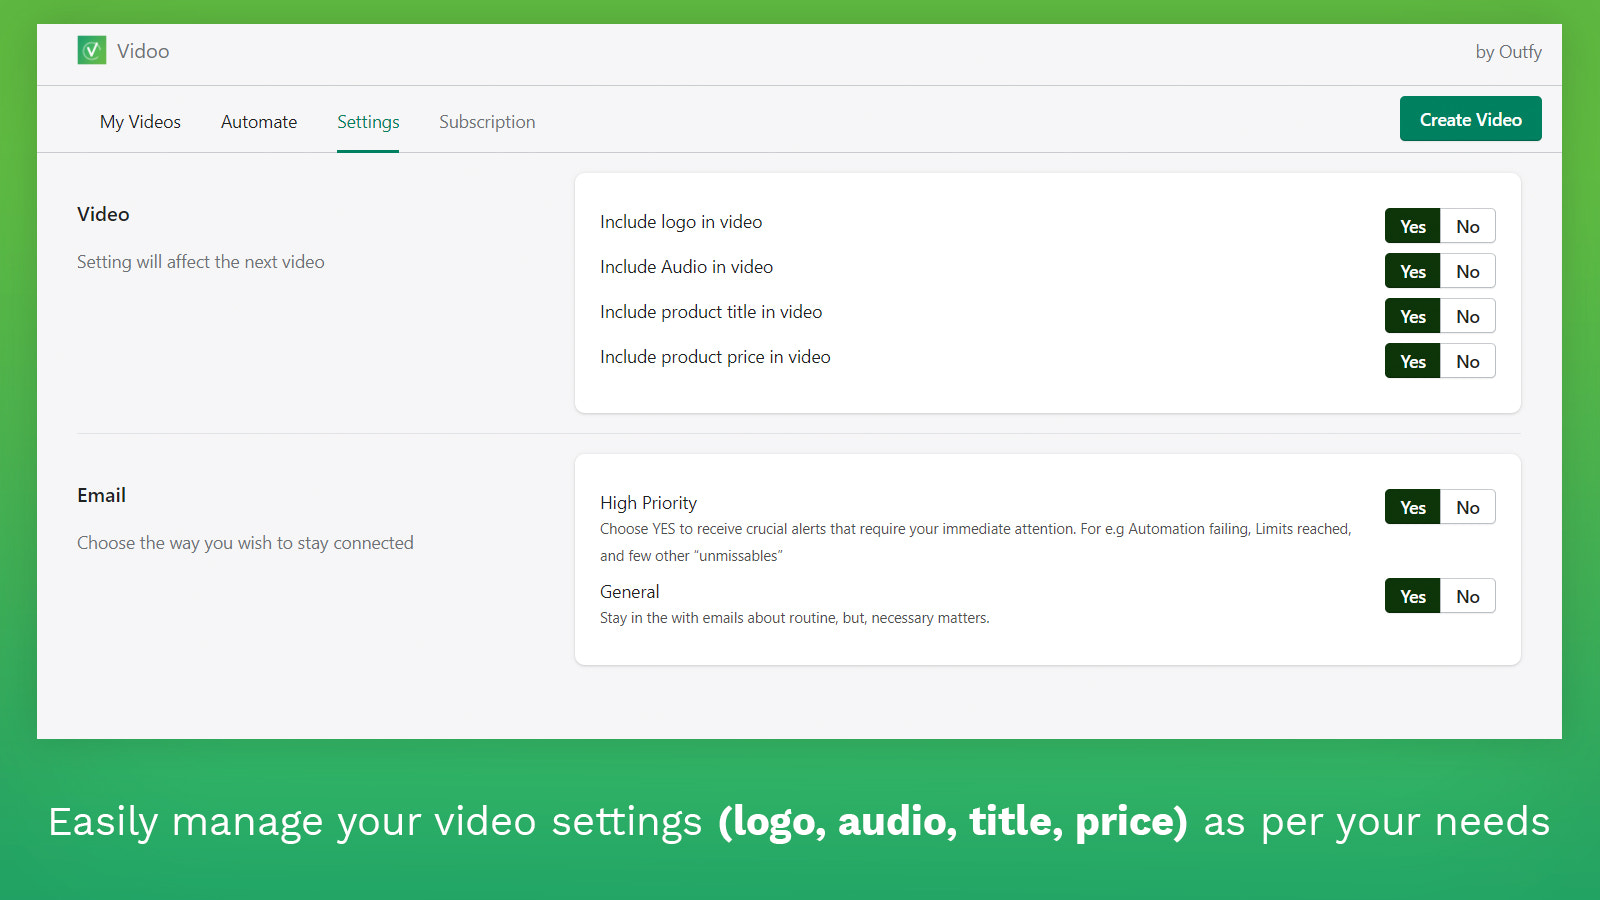 Easily manage your video settings(logo, audio, title, price)